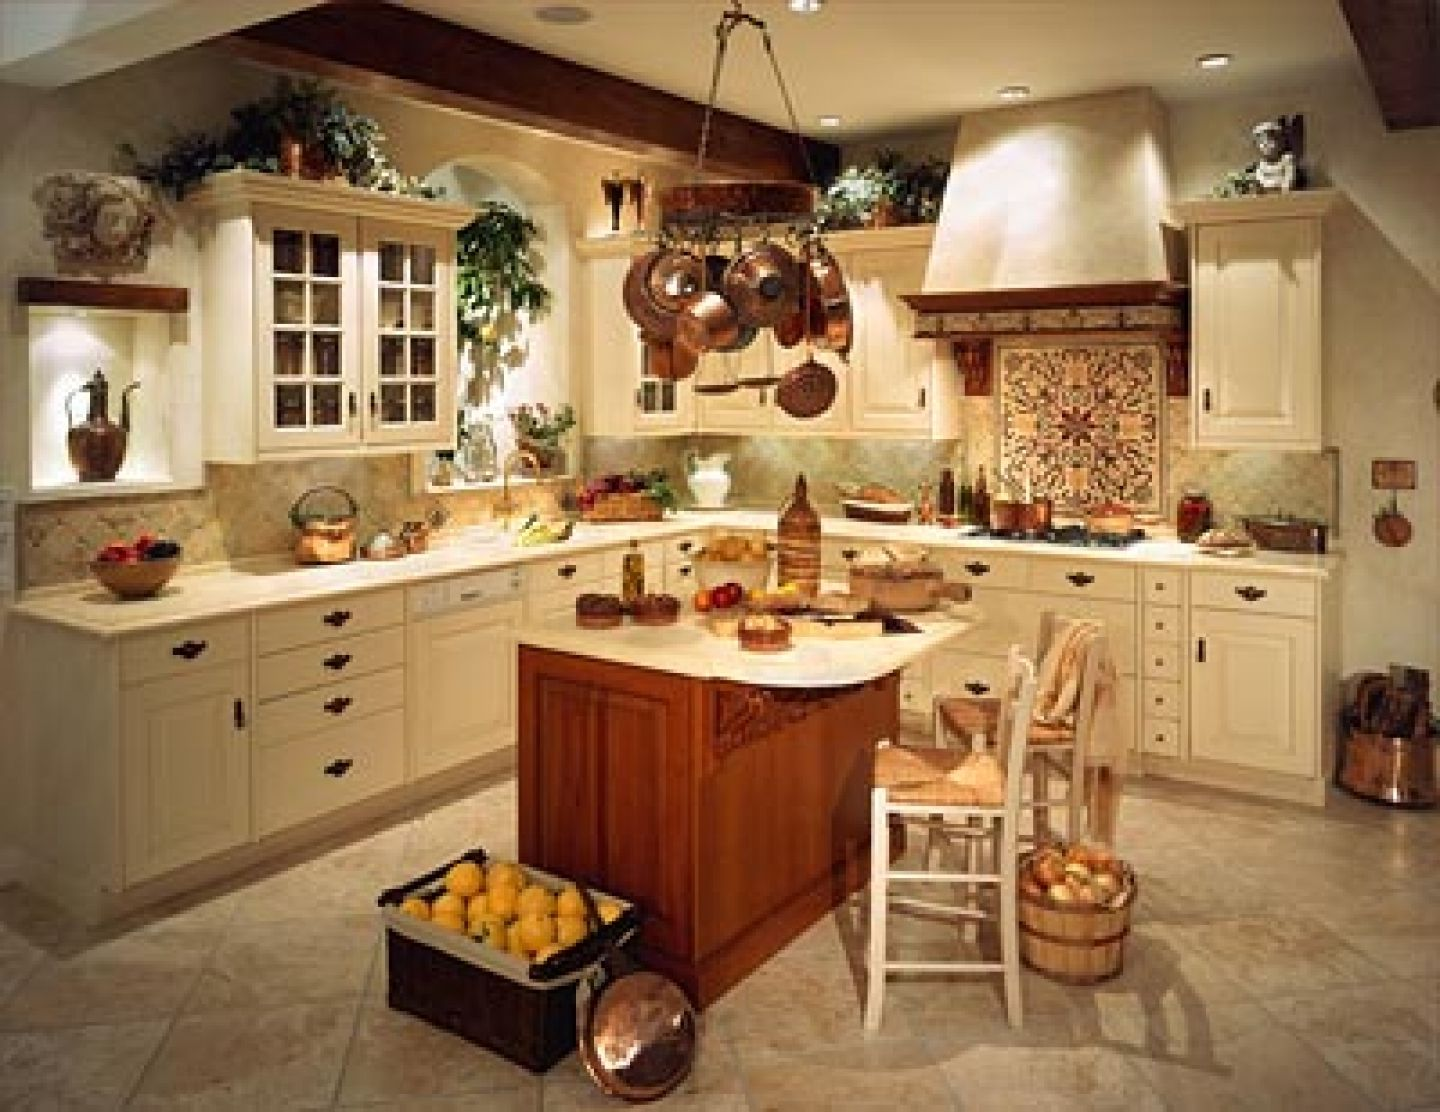 Kitchen Design Ideas: 7 Recommended Kitchen Decorating Themes For Perfecting